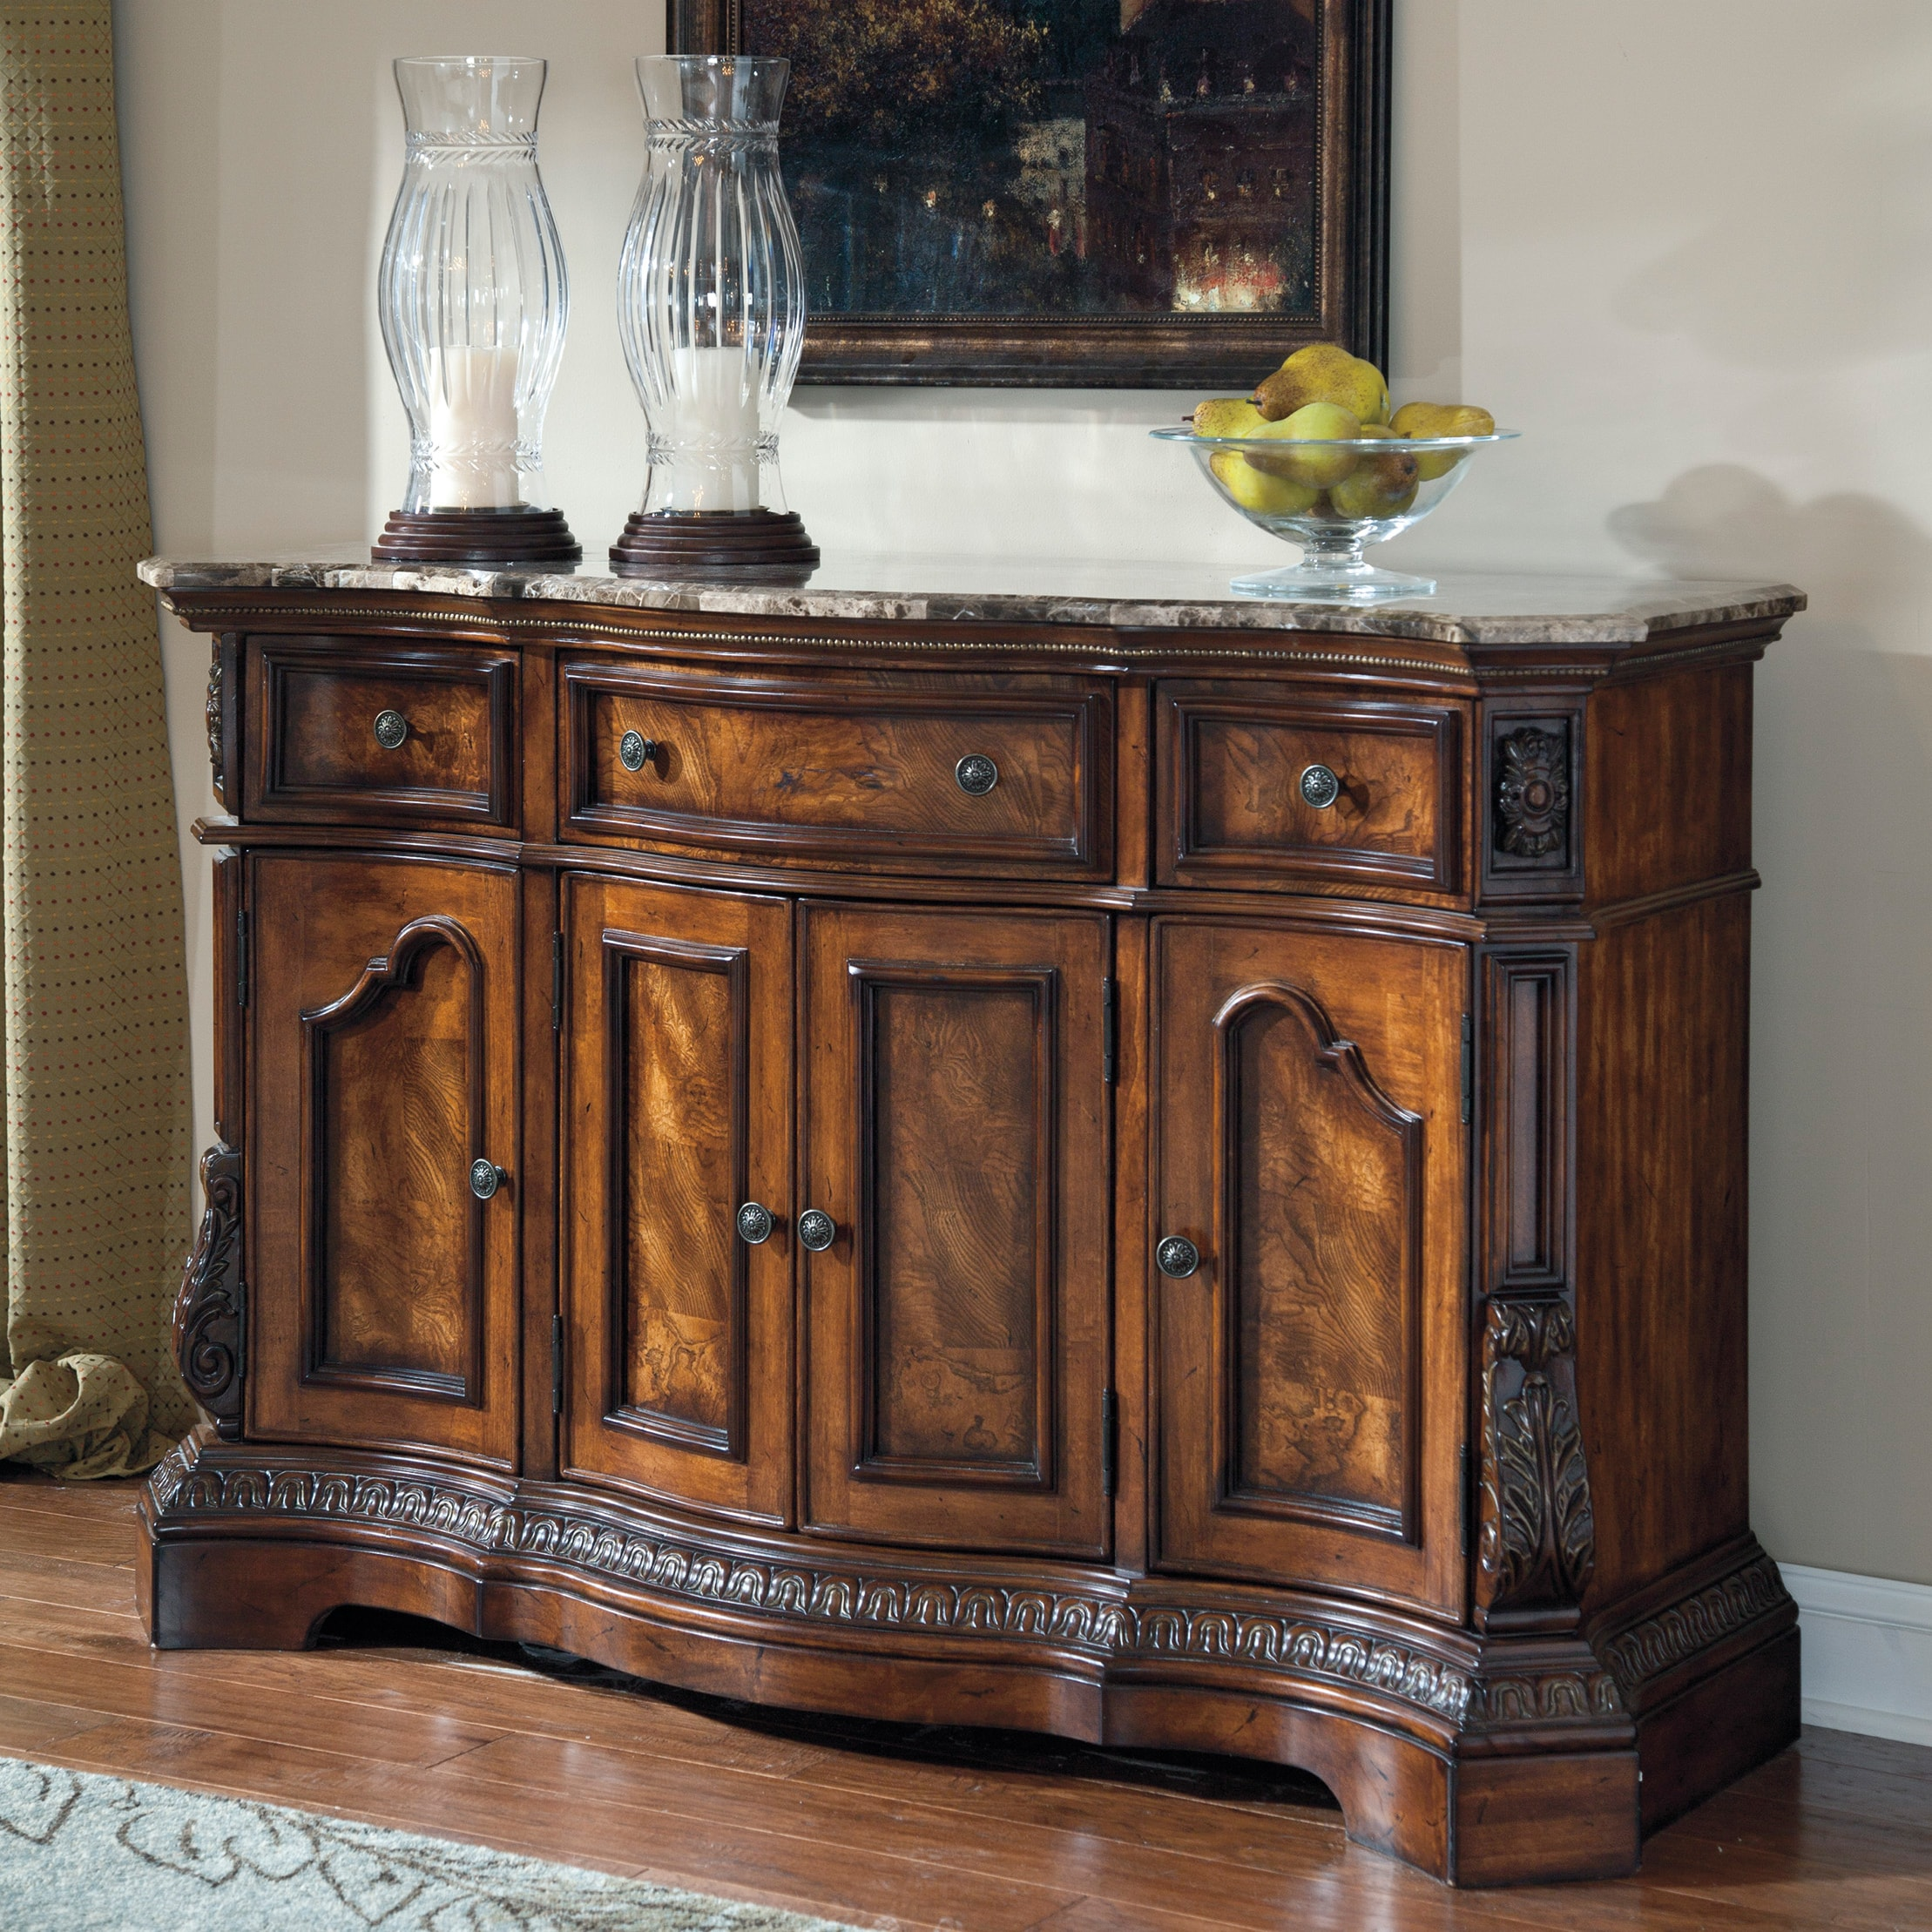 Signature Design by Ashley 'Ledelle' Dark Cherry Dining Room Server